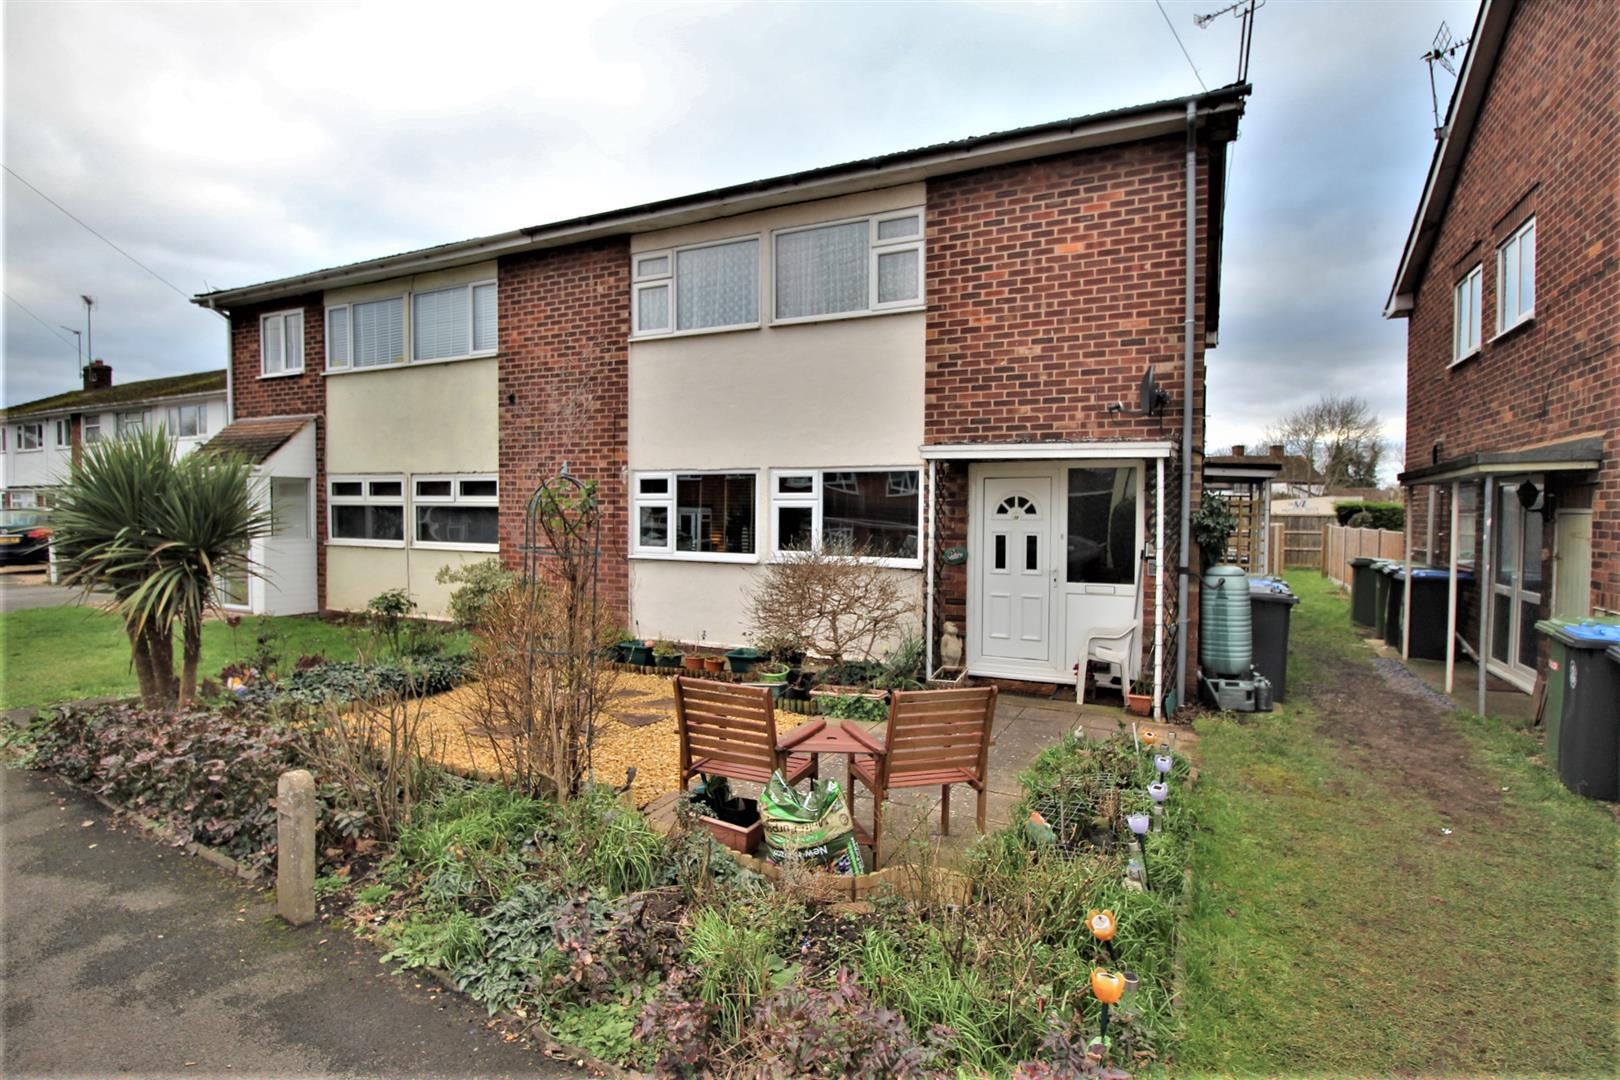 2 Bedrooms Maisonette Flat for sale in Lords Lane, Studley